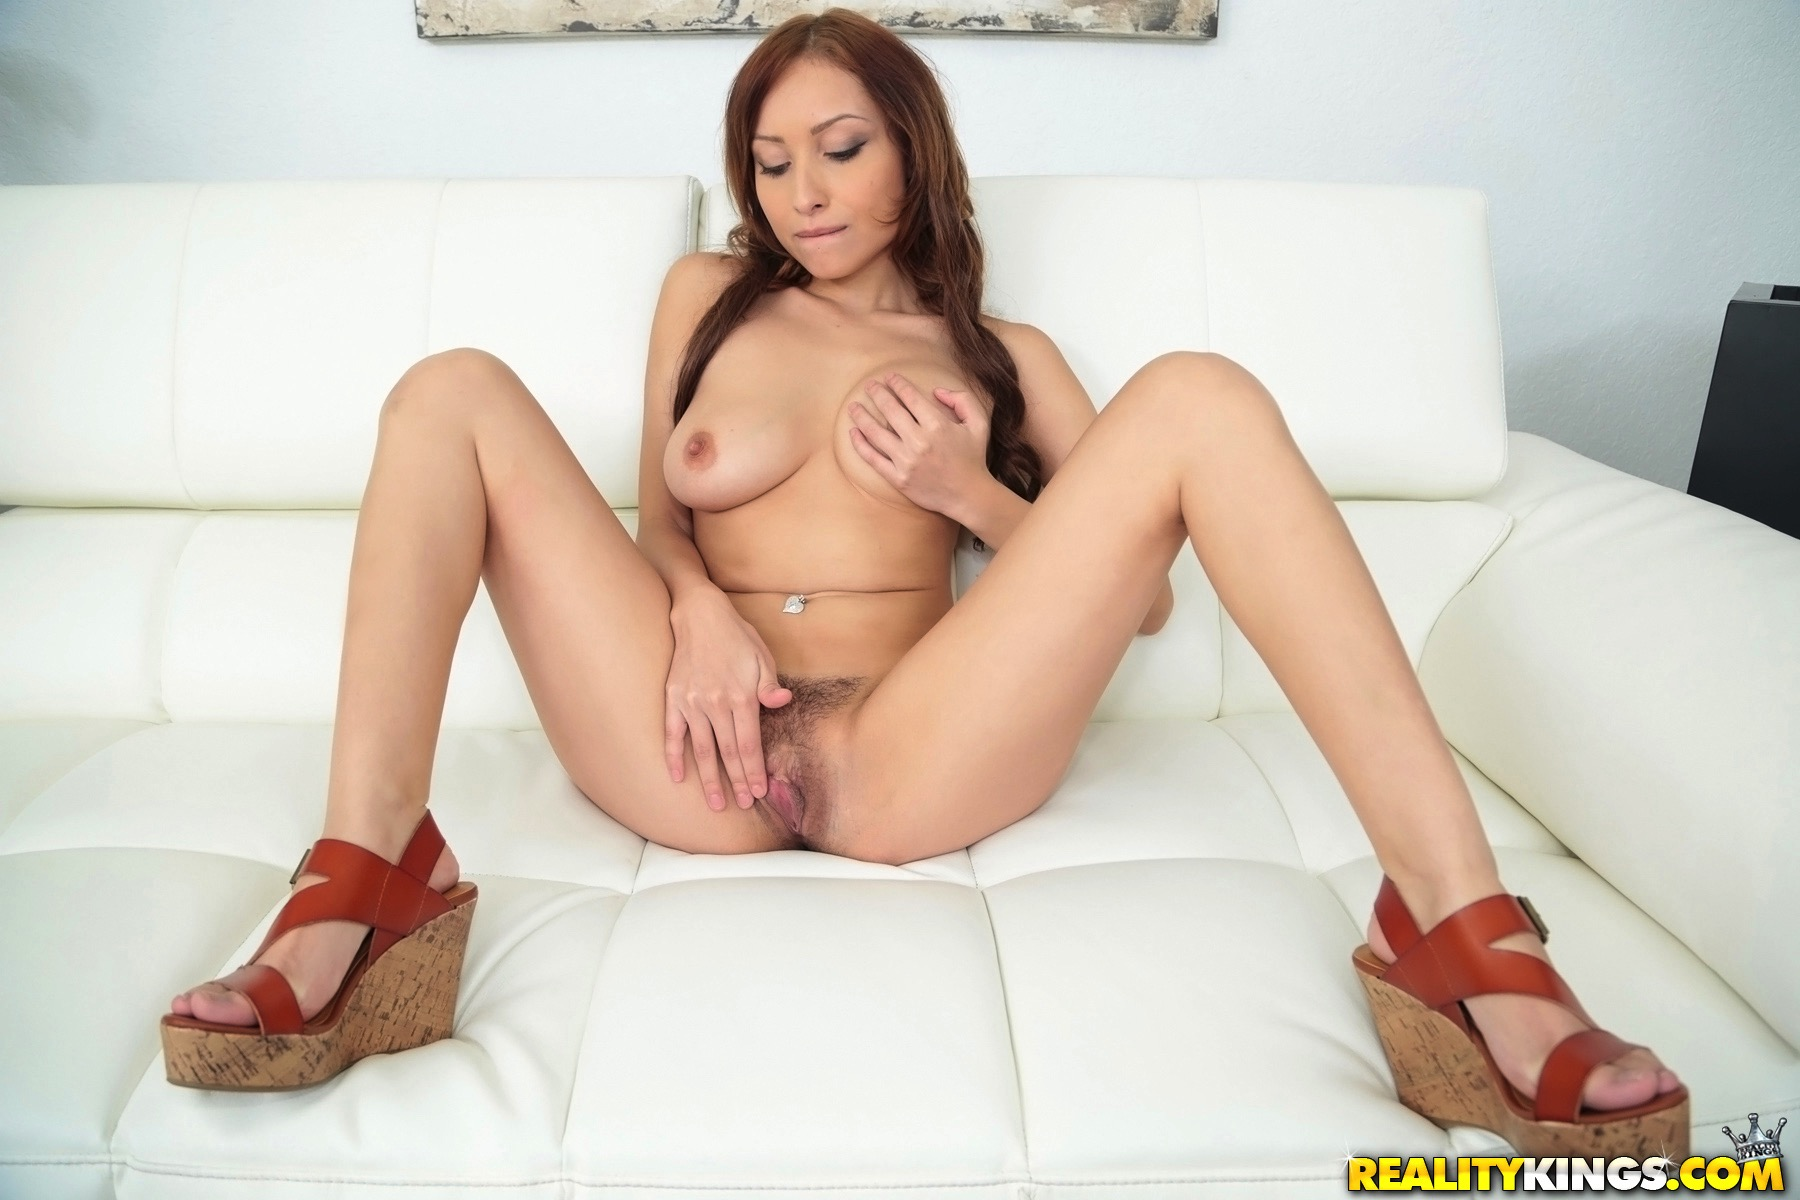 Realitykings cum fiesta pussy perfection 6